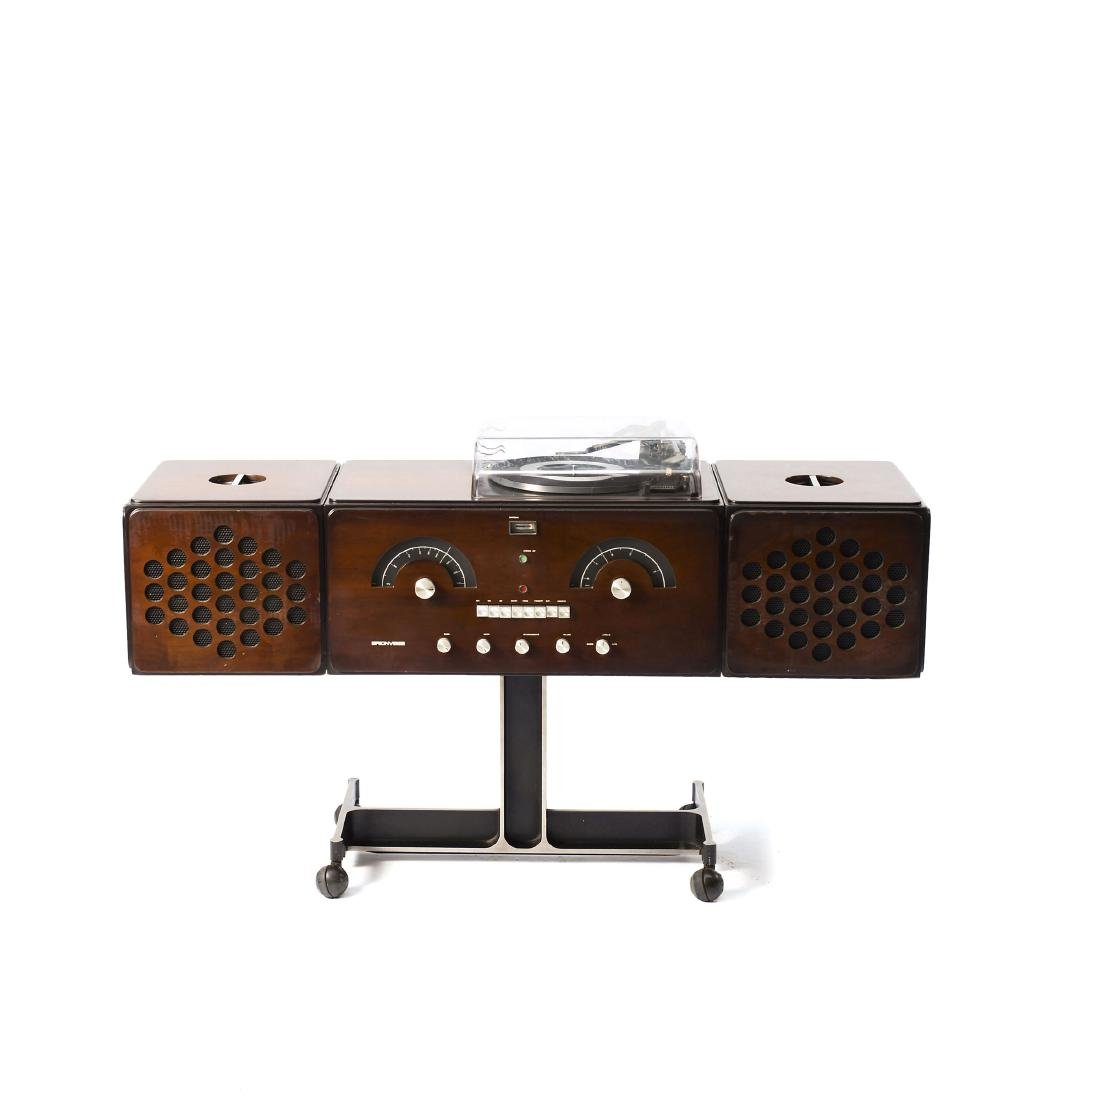 'RR-126' stereo system, 1965